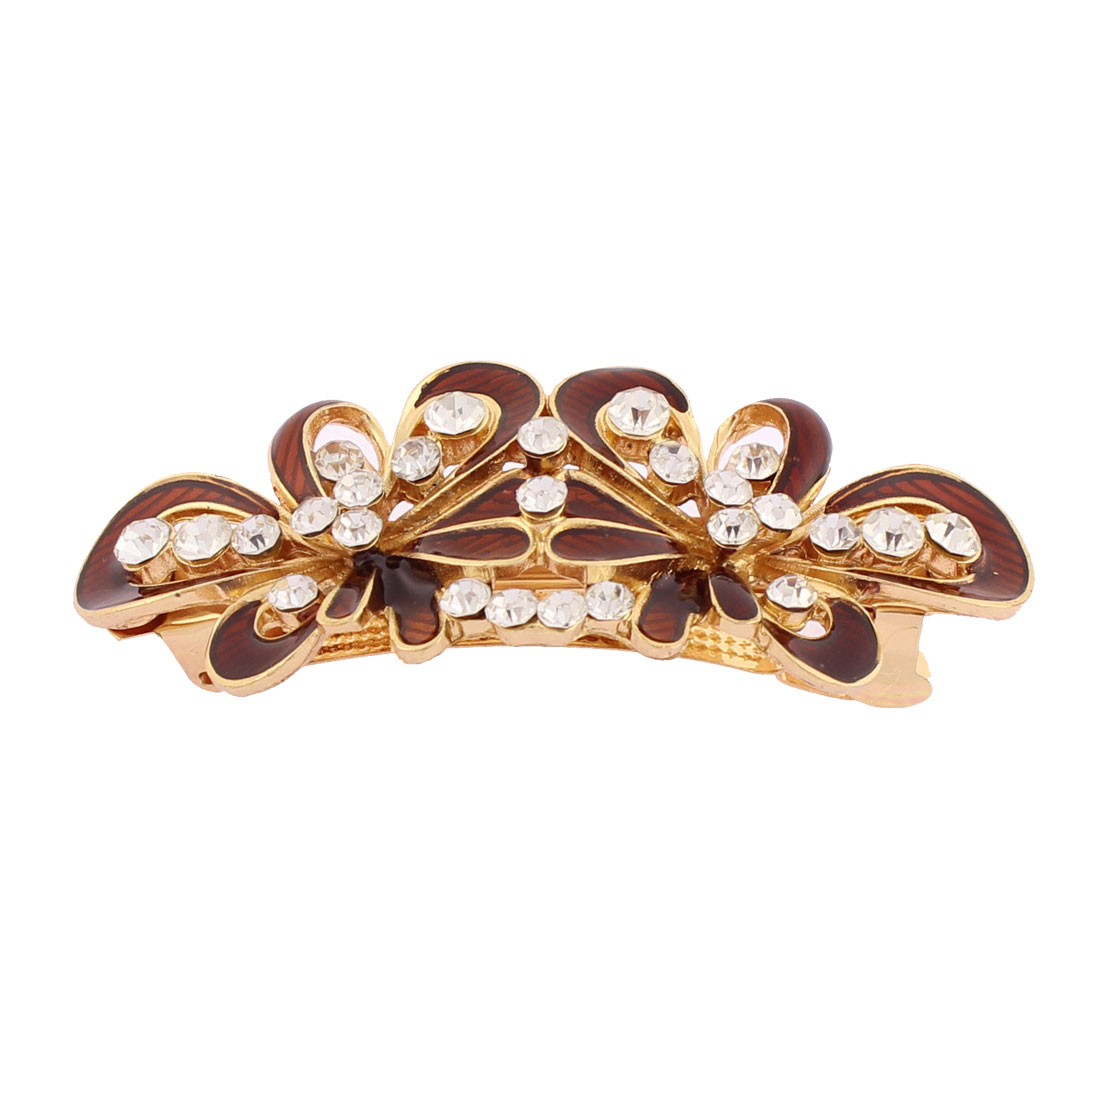 Women Plastic Rhinestone Inlaid Flower Design French Barrette Style Metal Hair Clip Hairpin Gold Tone Brown